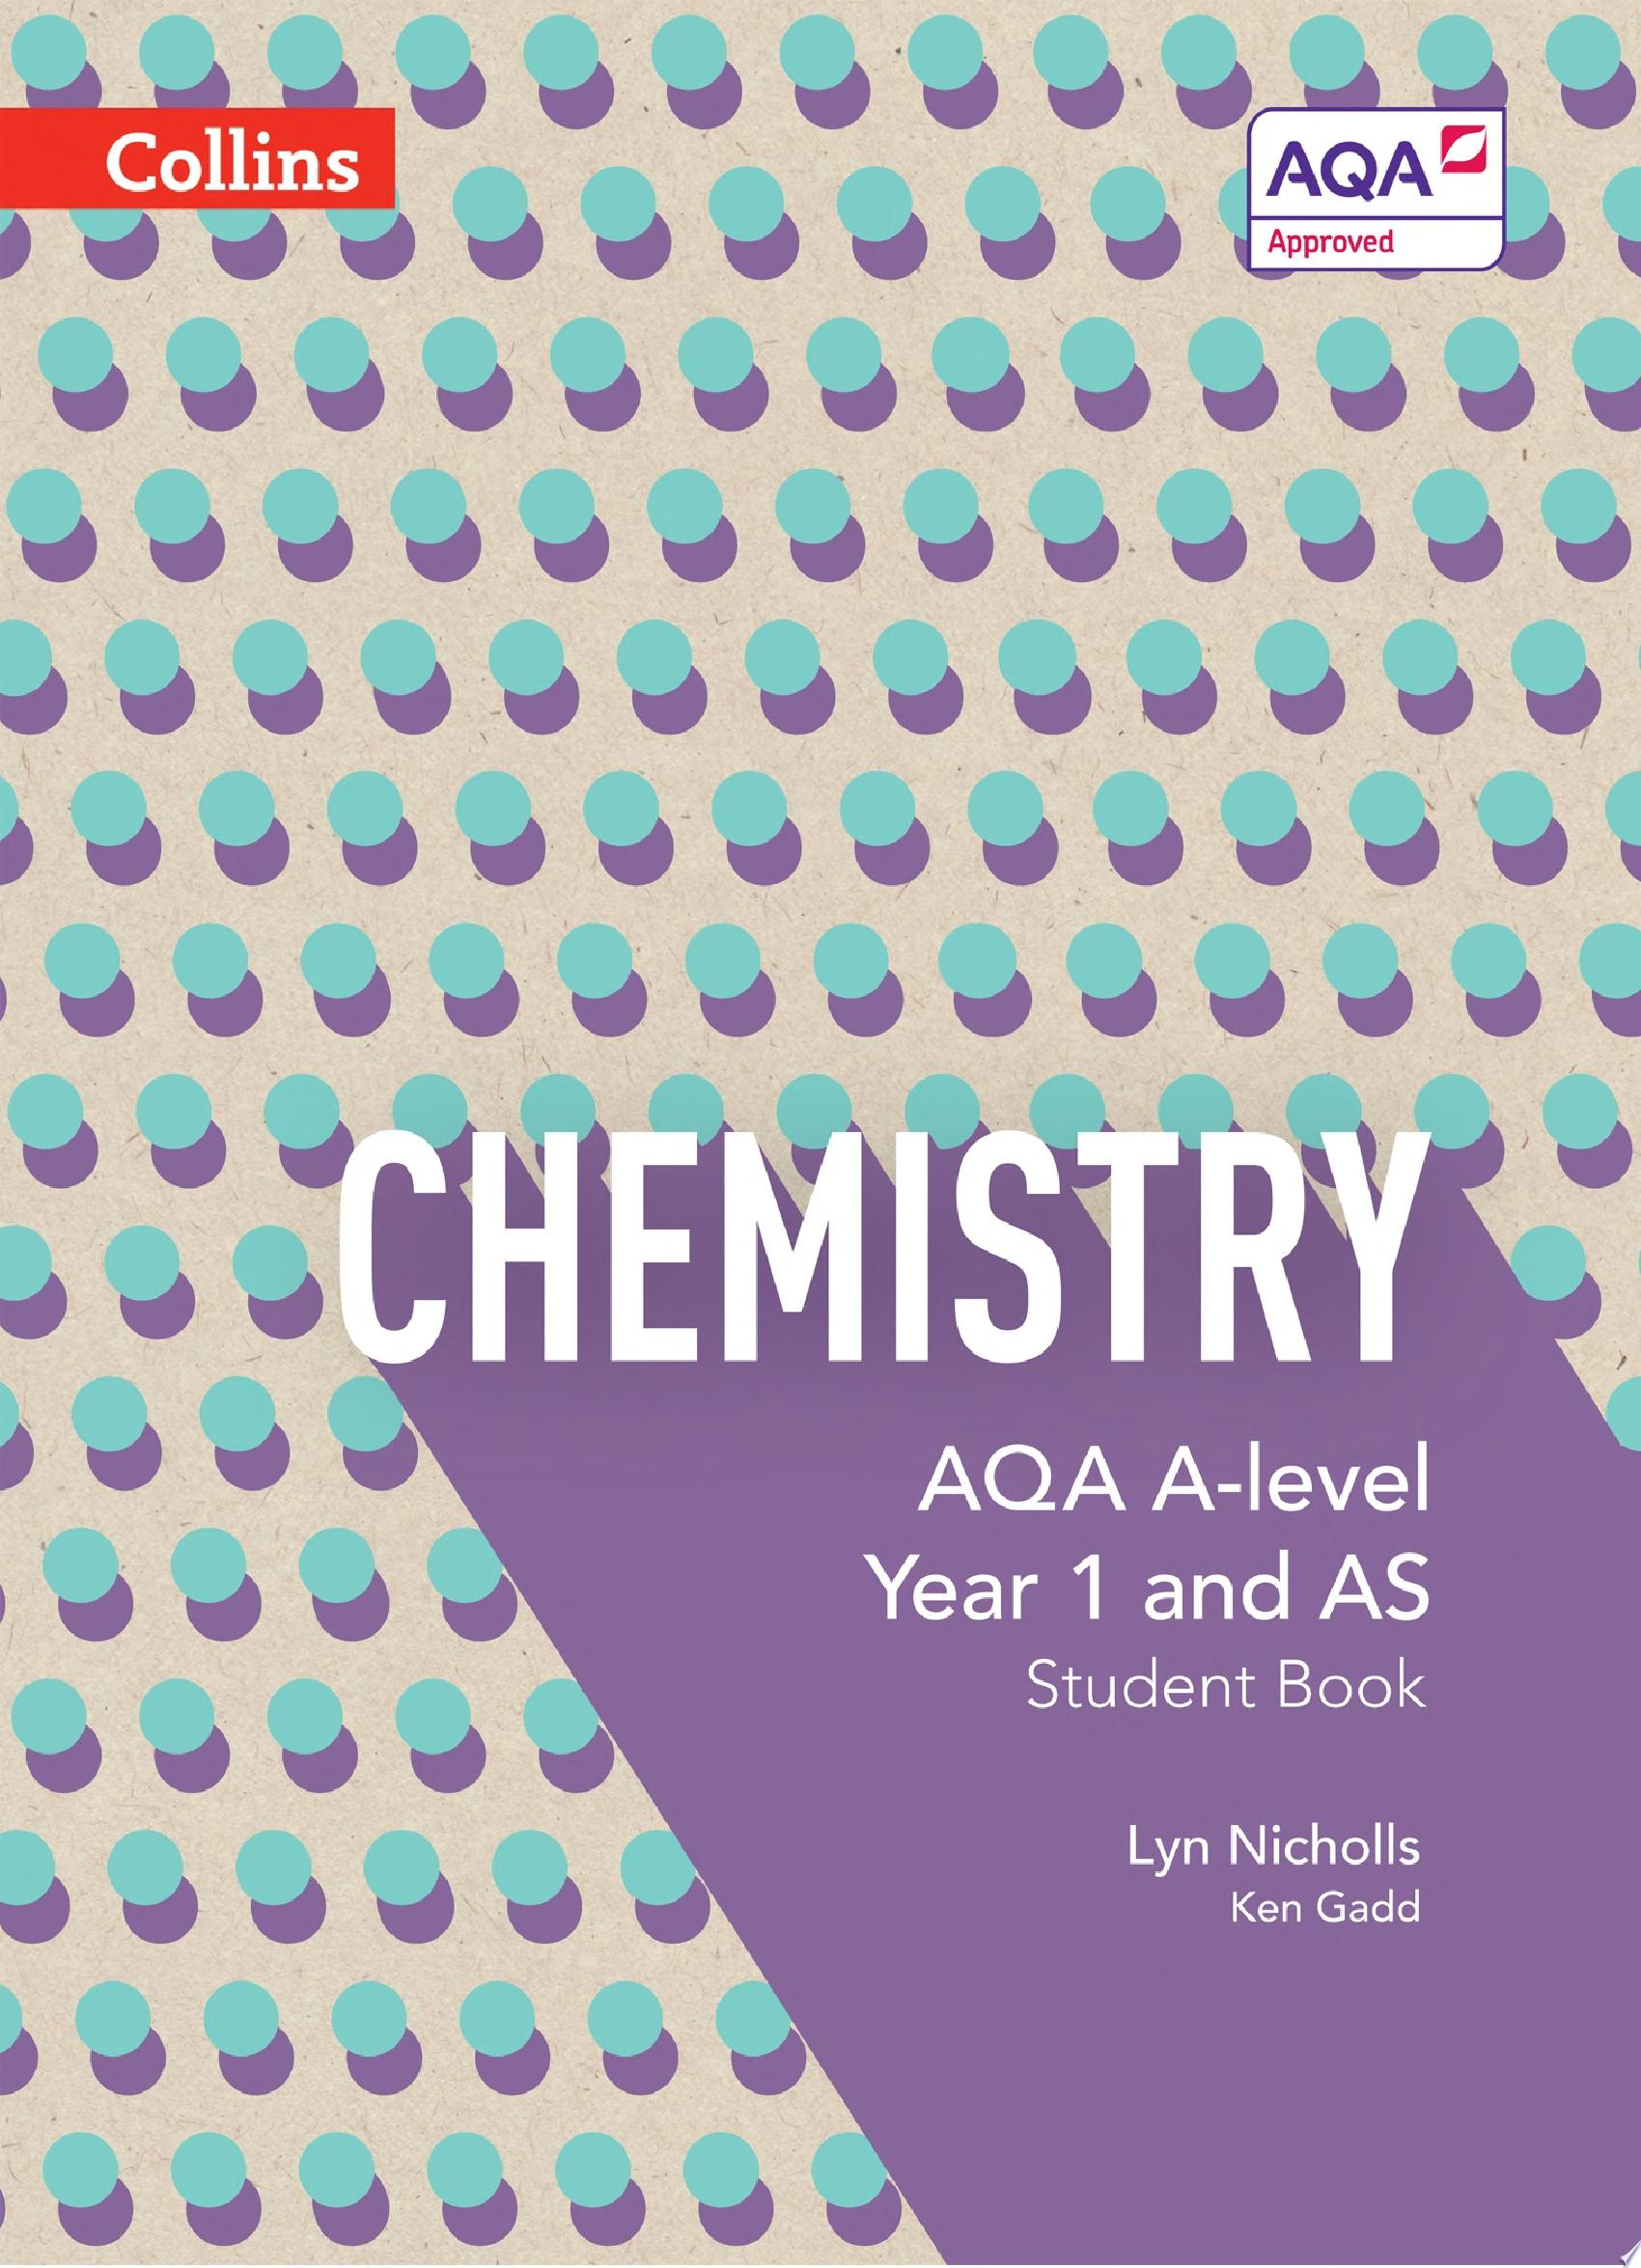 AQA A level Chemistry Year 1 and AS Student Book  AQA A Level Science